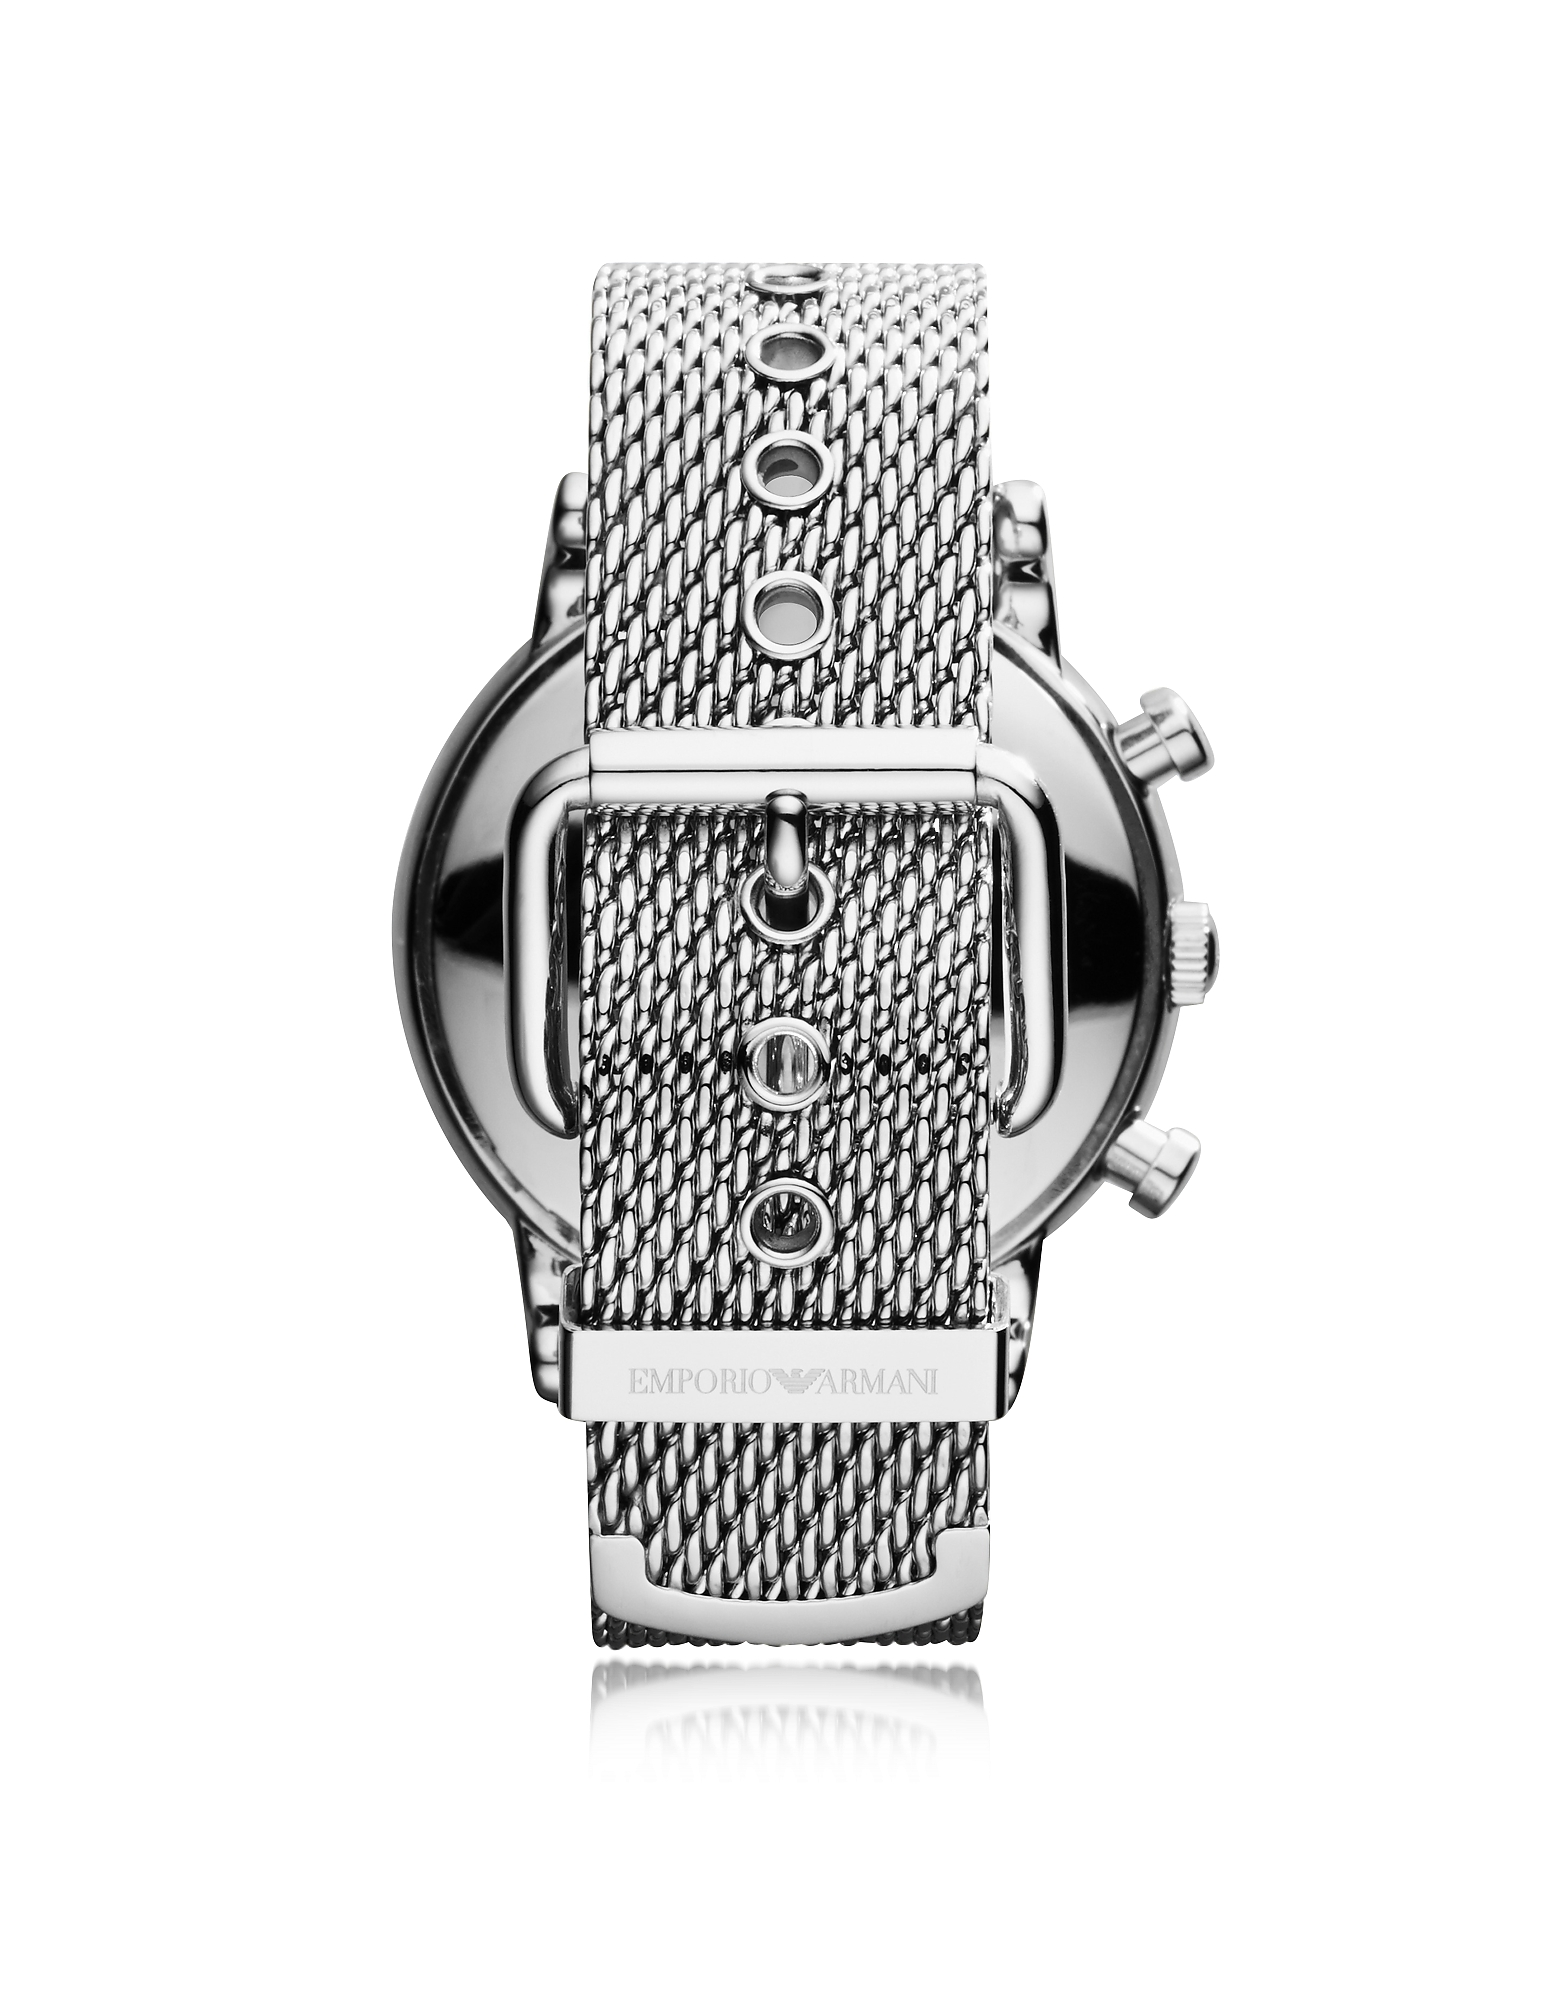 Stainless Steel Black Dial Men's Watch w/Mesh Band от Forzieri.com INT